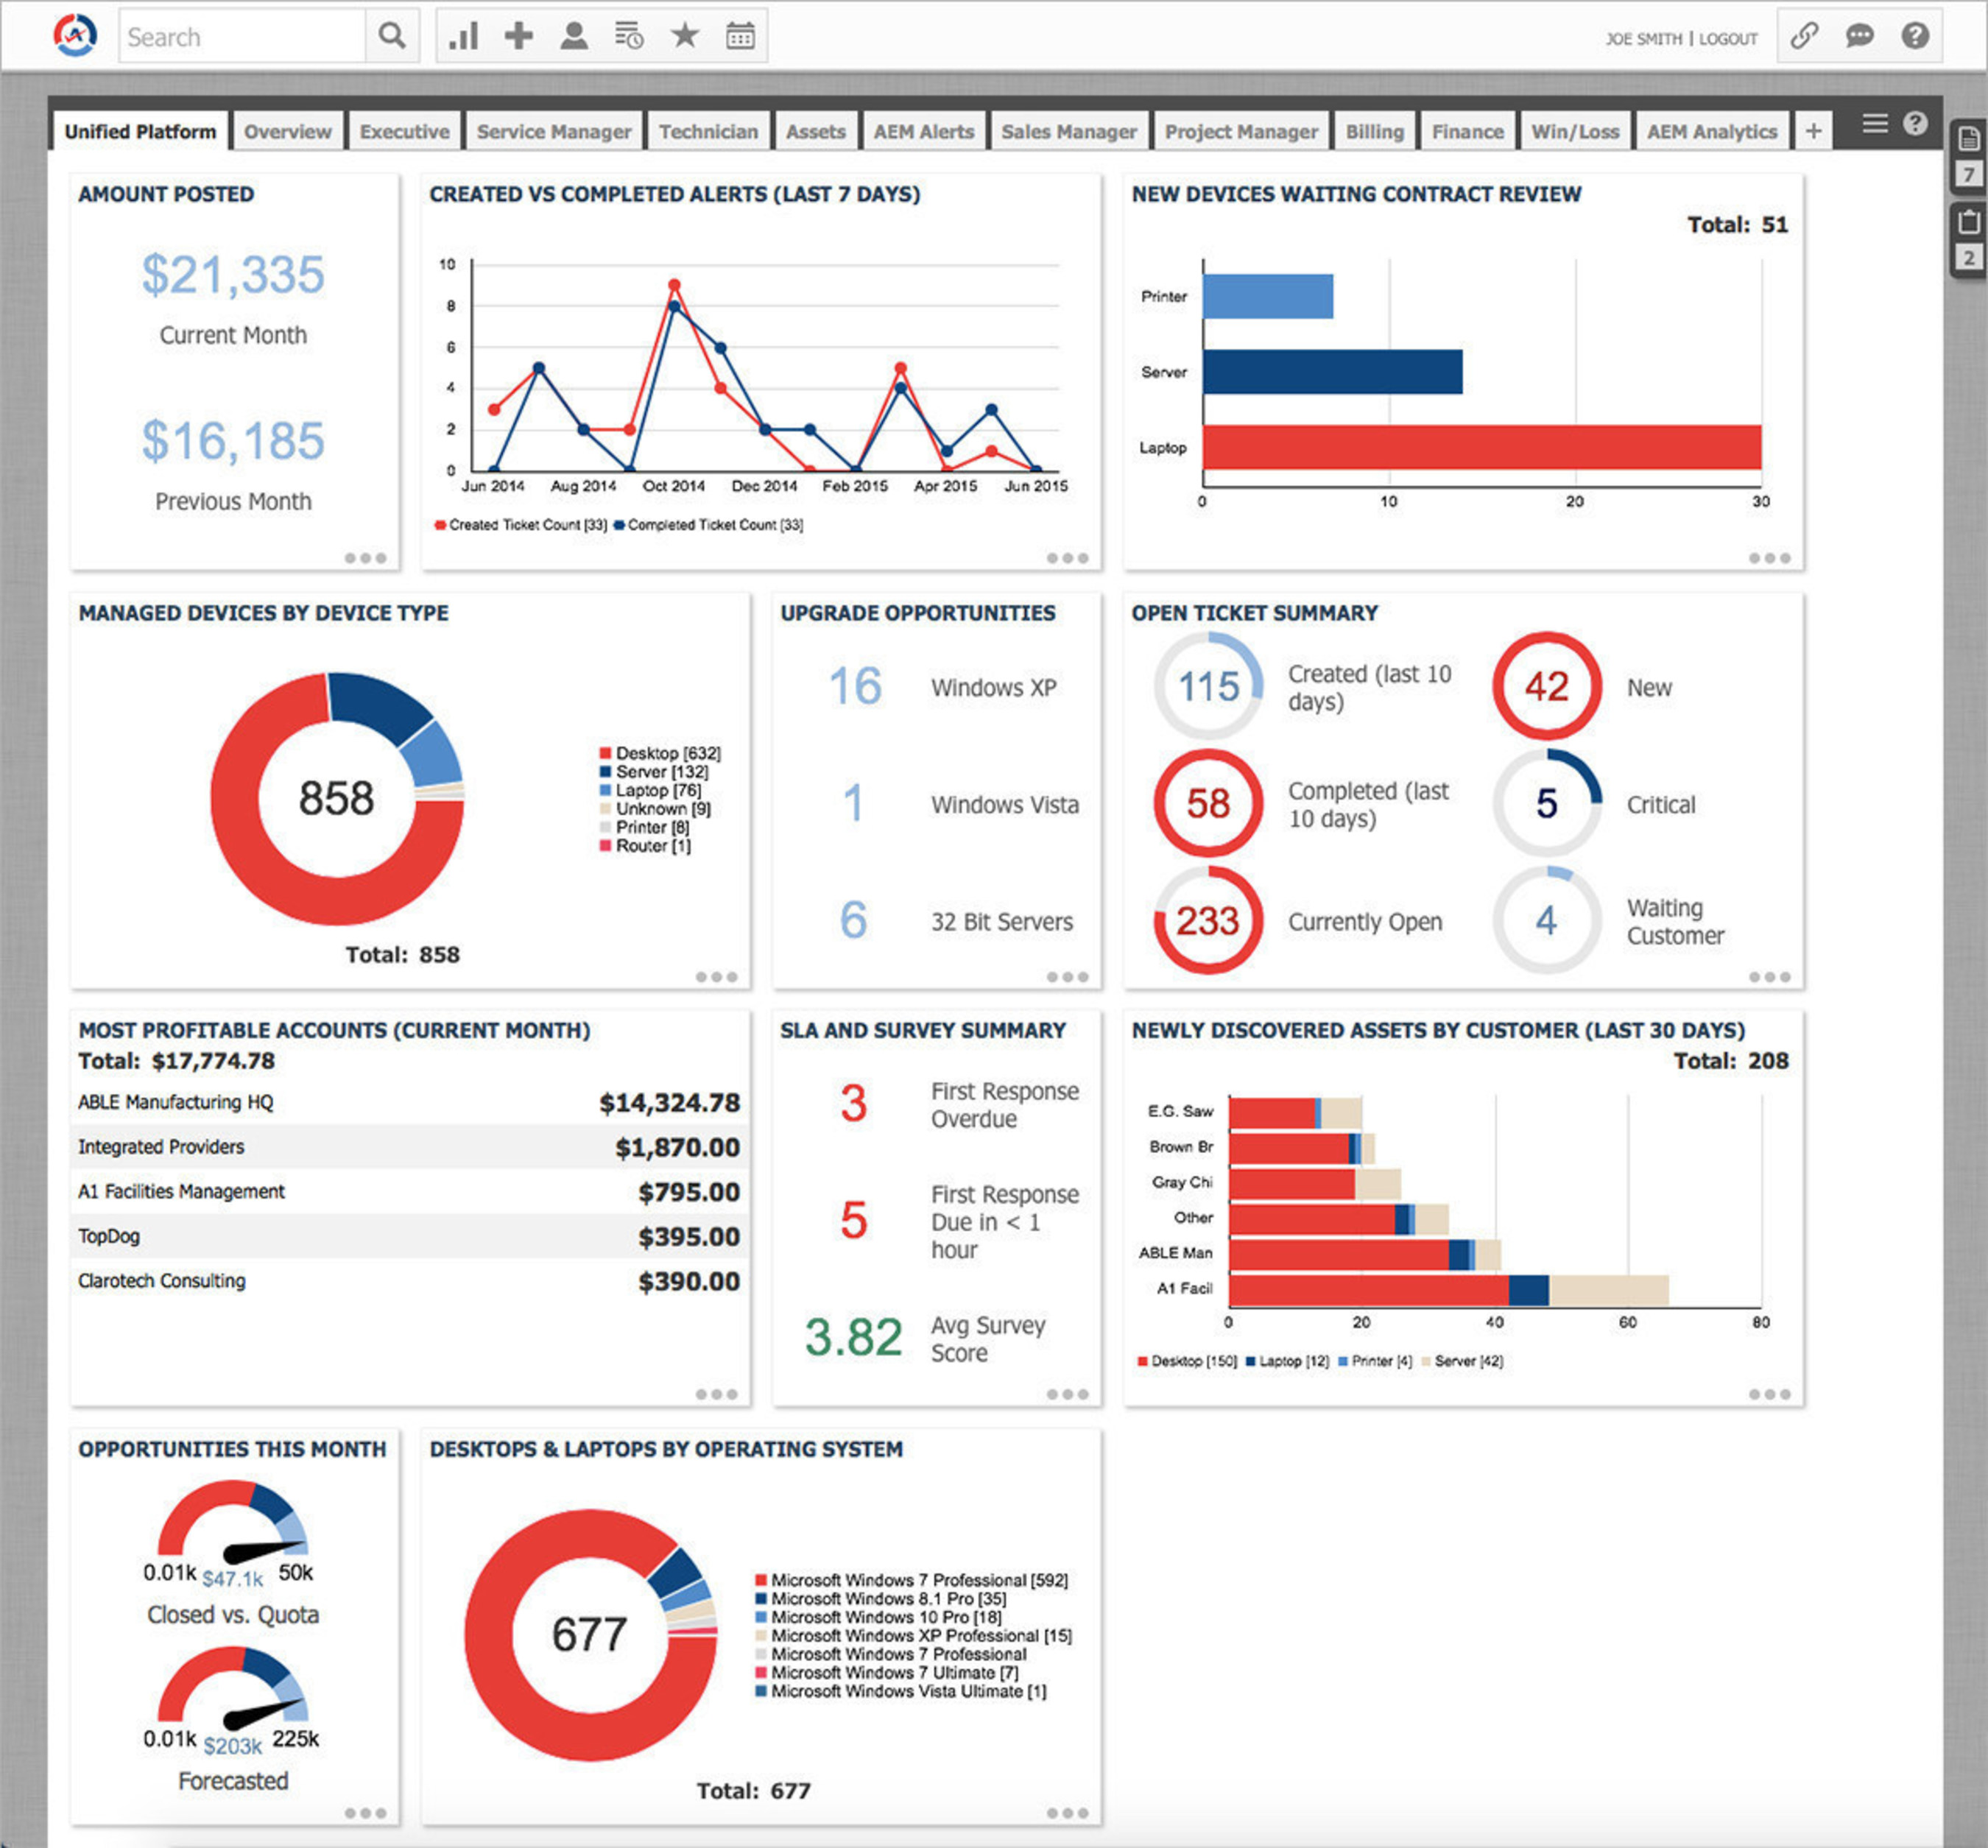 Autotask's unified IT business management platform combines asset detail and service data to reveal business insights and opportunities not previously achievable in a PSA or RMM solution.